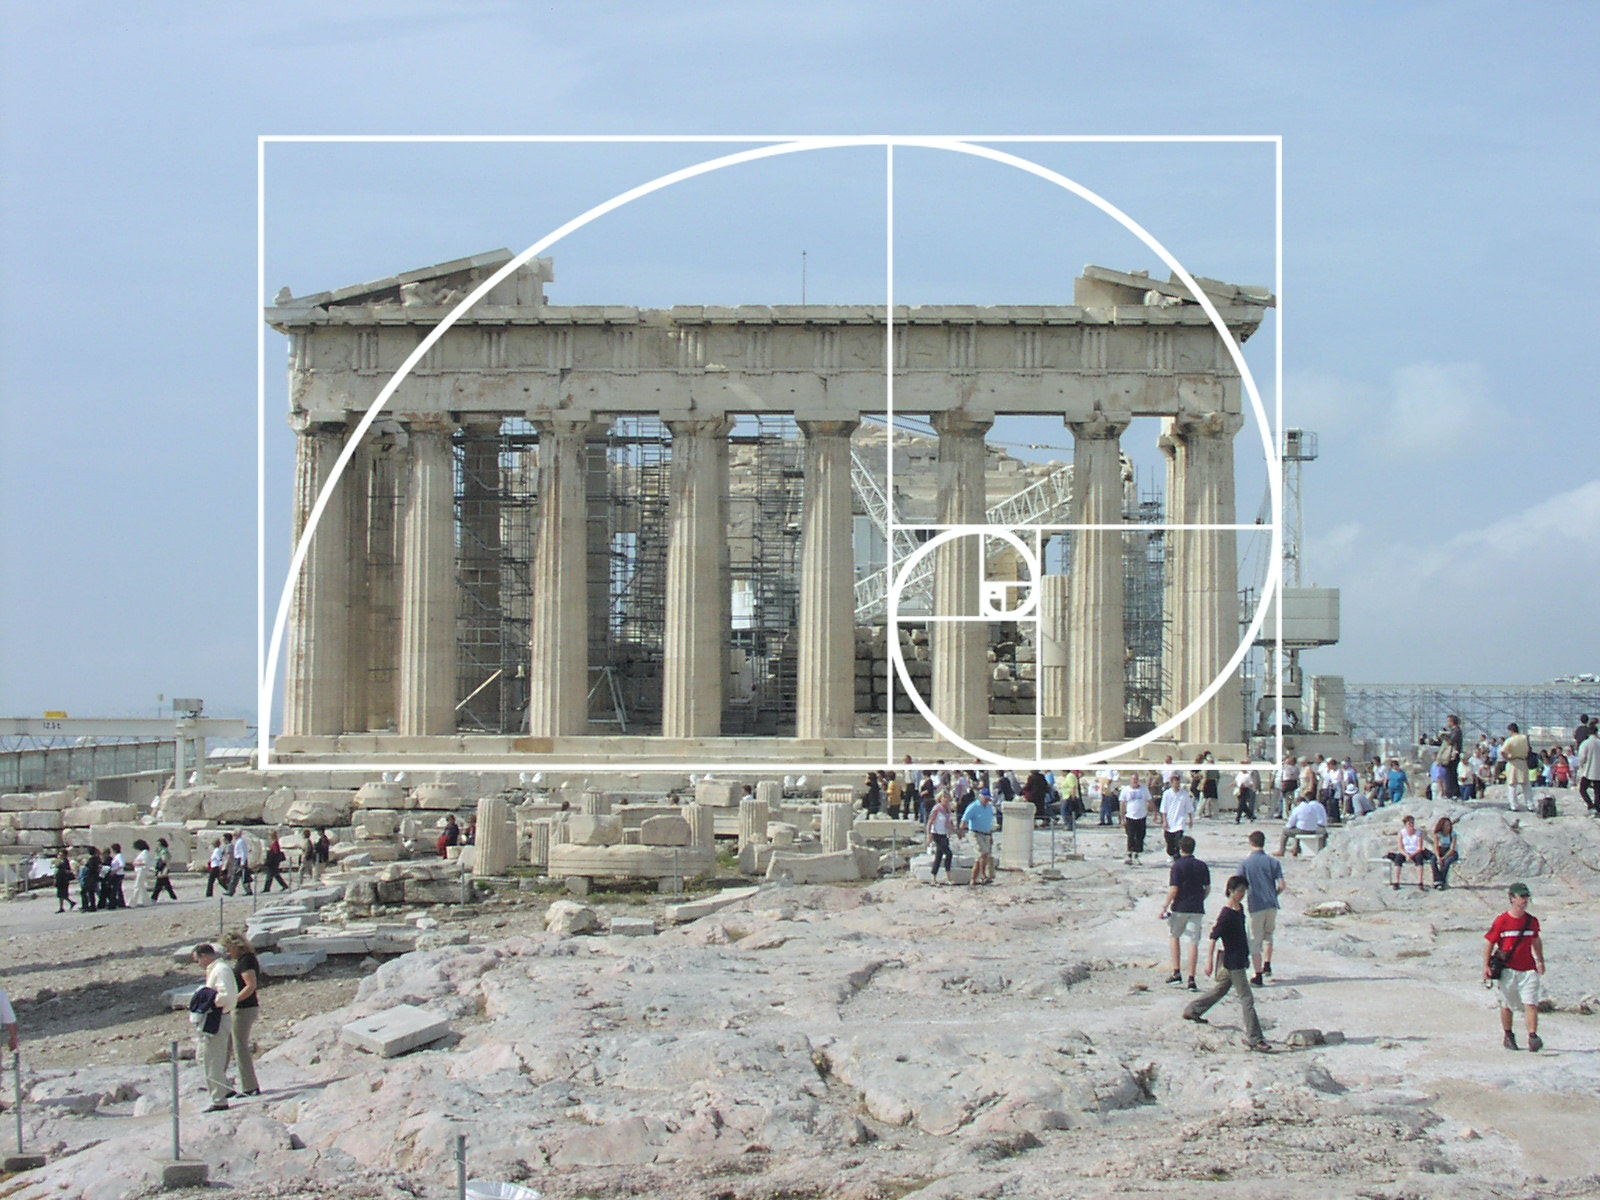 Photo of the Parthenon by Sébastien Bertrand on Flickr. Image via fastcodesign.com & The Golden Ratio: Relevant or not? | News | Archinect